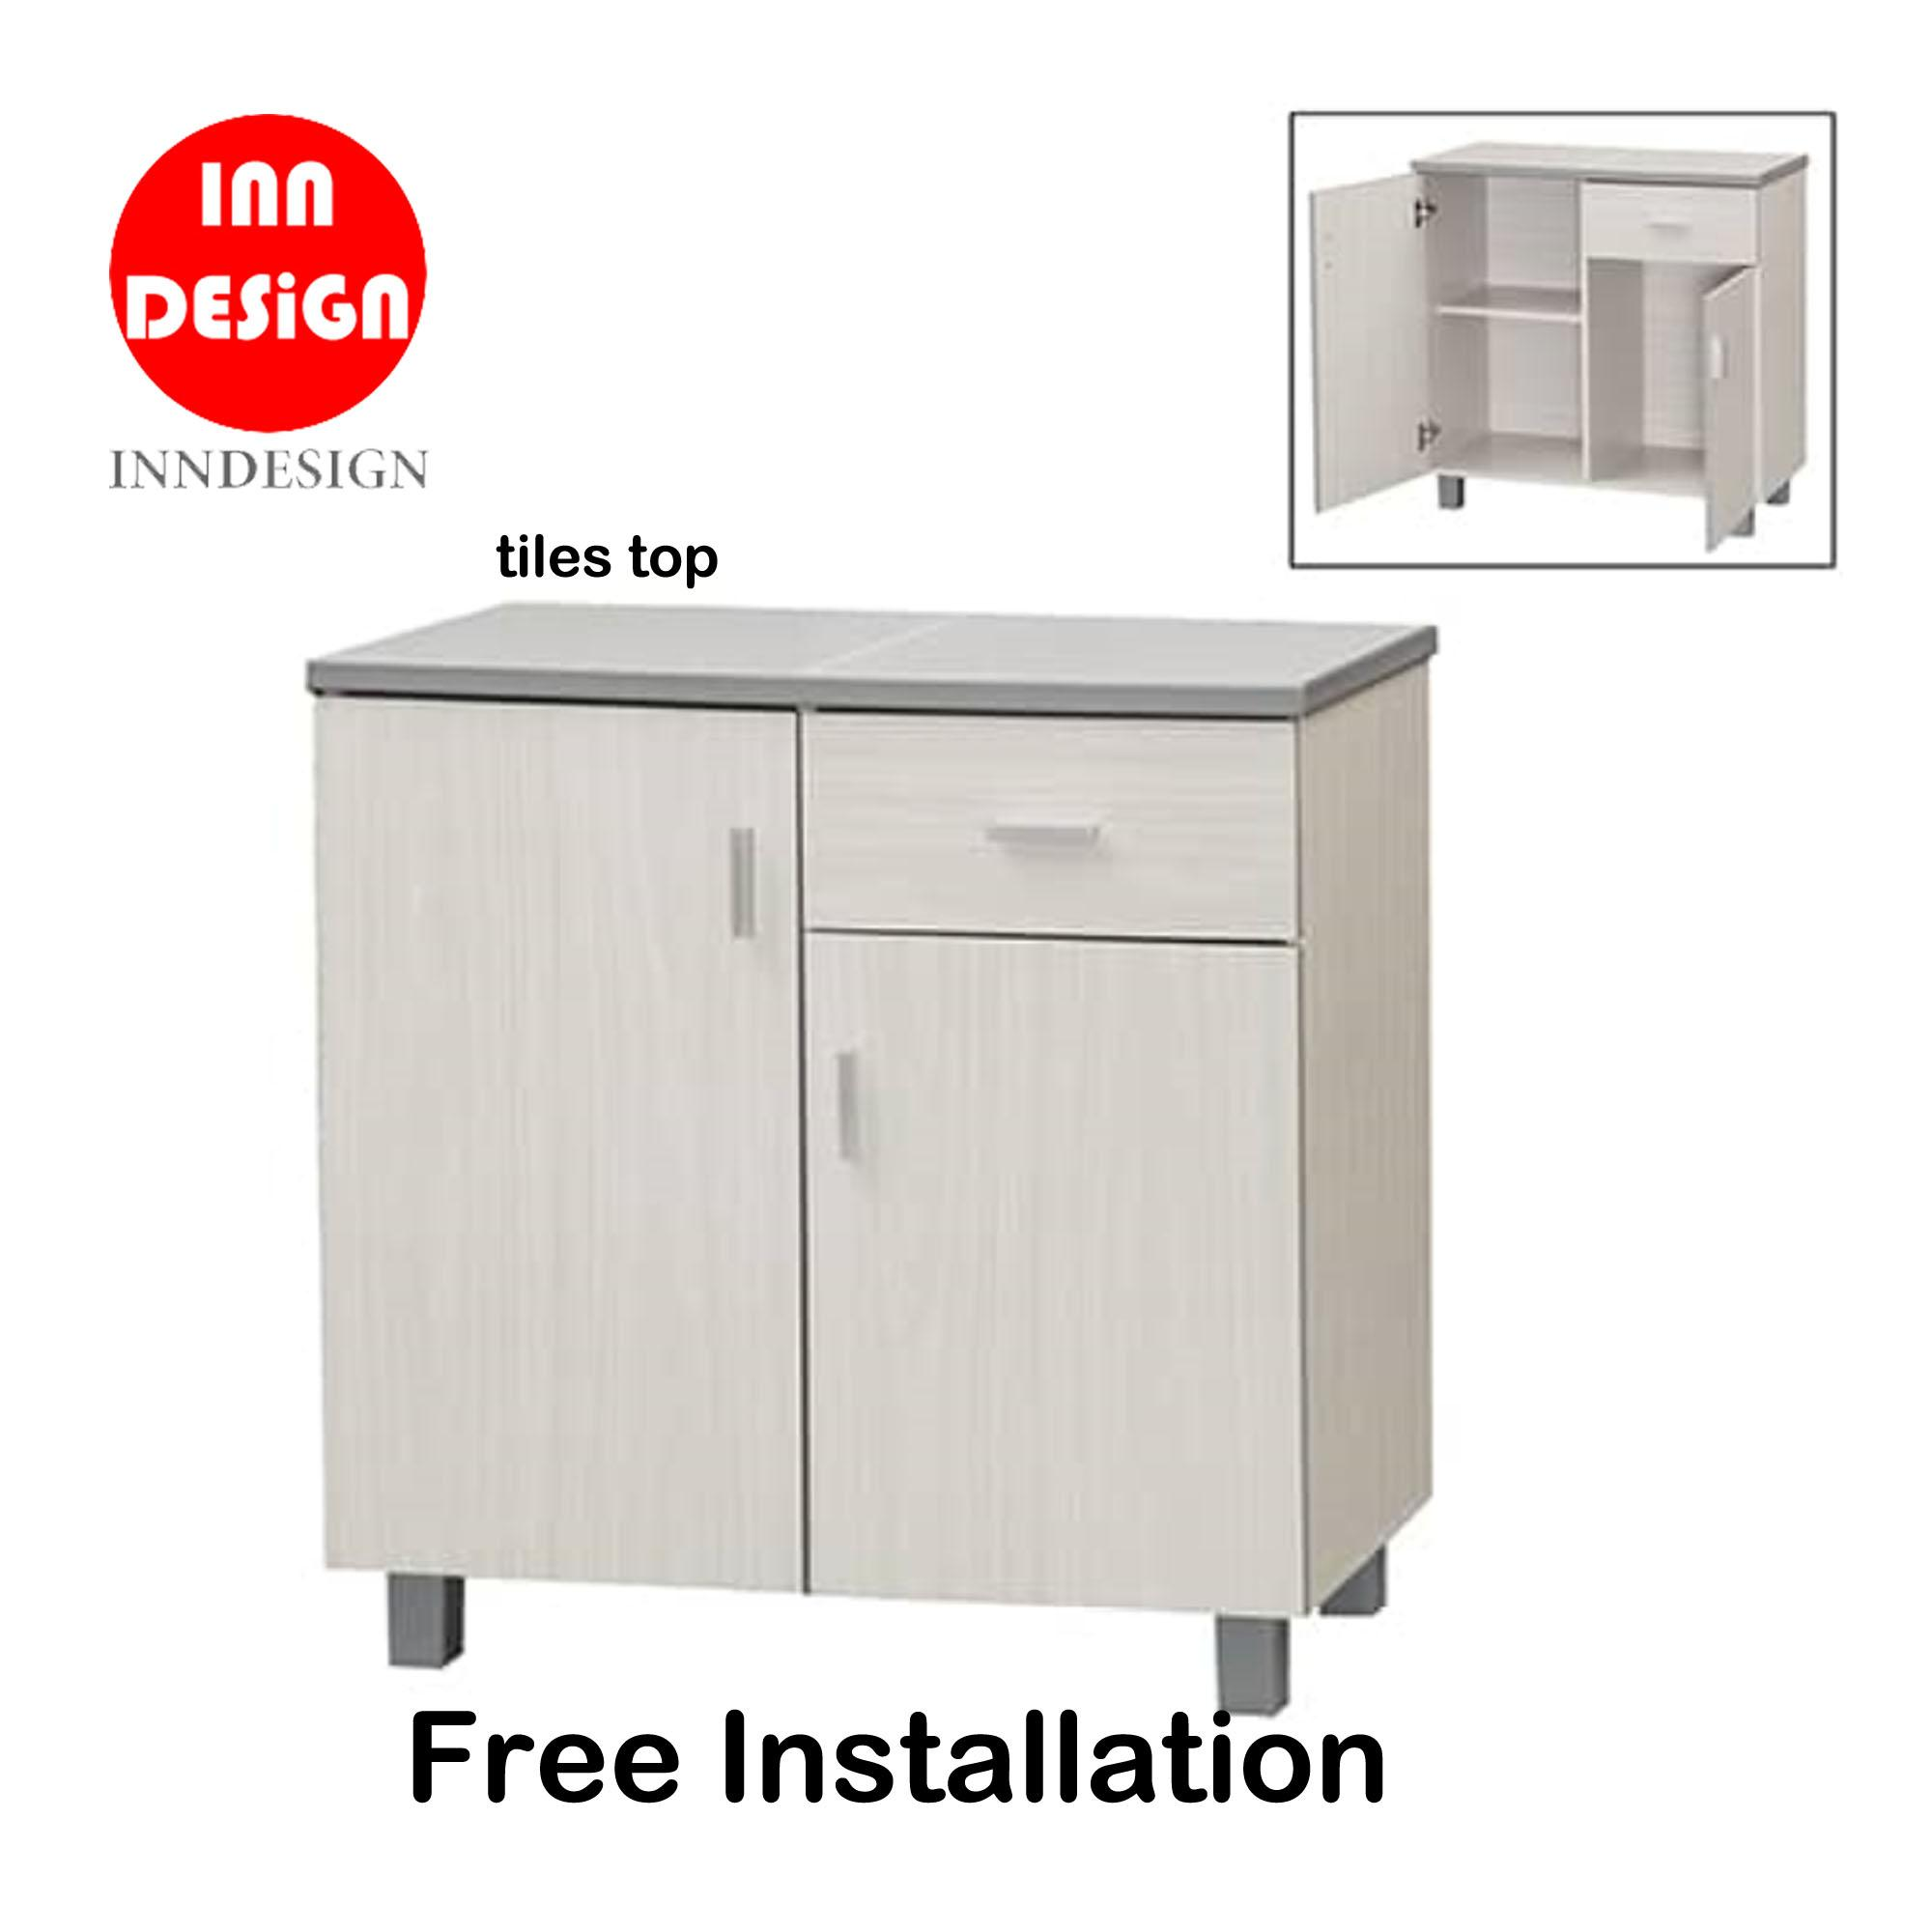 Dew 2 Doors Kitchen Cabinet With Tiles Top (Free Delivery and Installation) (WhiteWash)